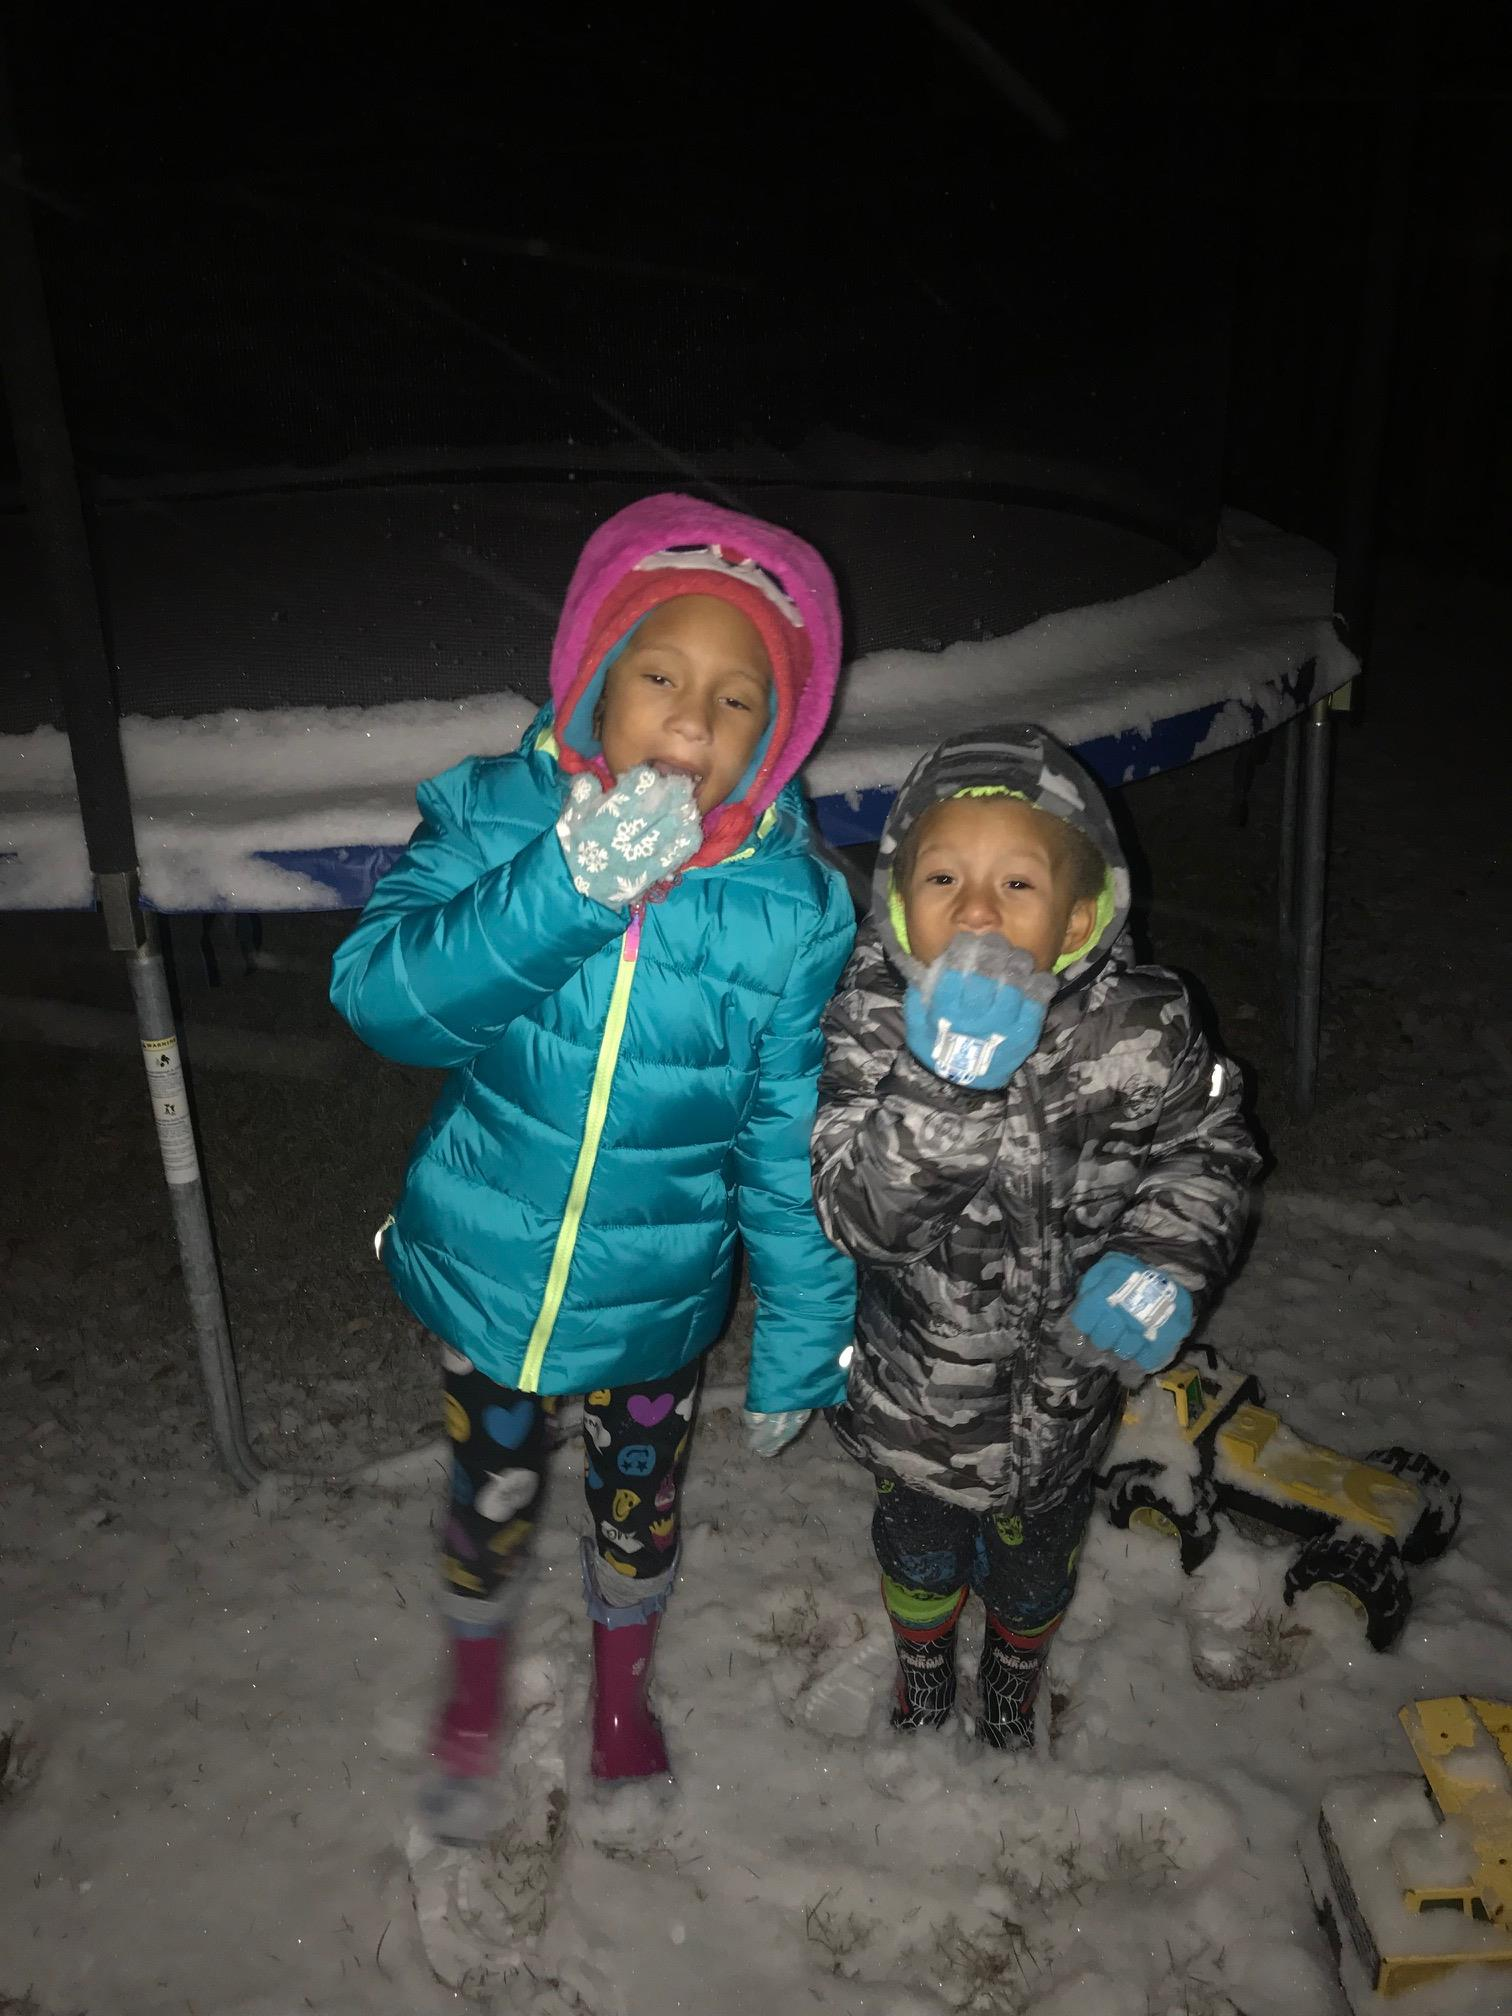 <div class='meta'><div class='origin-logo' data-origin='none'></div><span class='caption-text' data-credit='Credit: Melanie Livingston'>Savannah and Chance enjoying the snow</span></div>